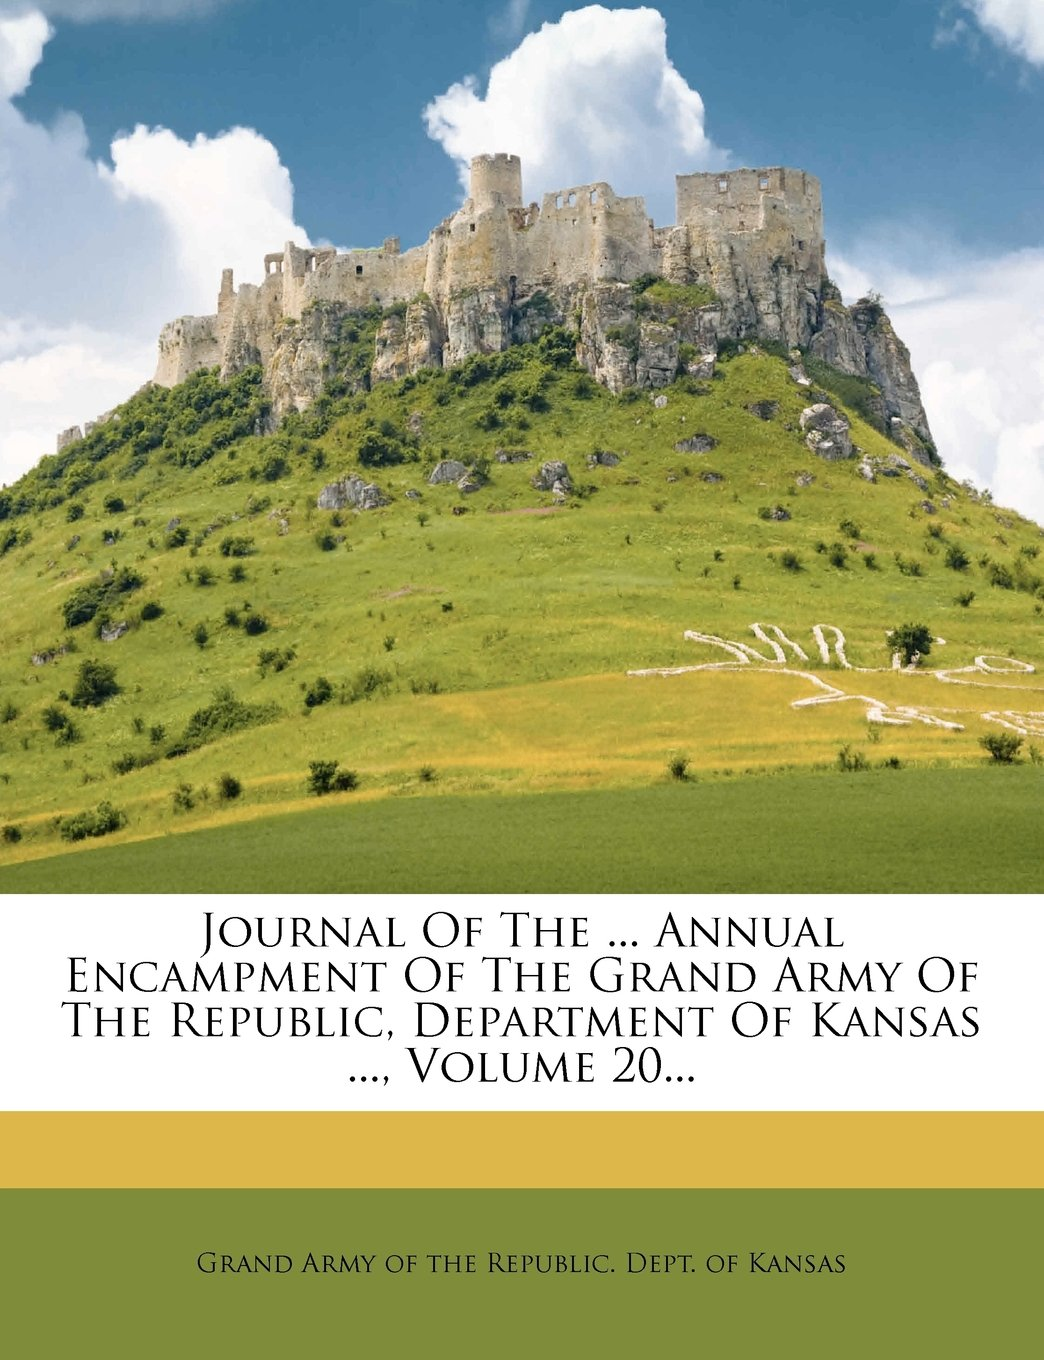 Journal of the ... Annual Encampment of the Grand Army of the Republic, Department of Kansas ..., Volume 20... PDF